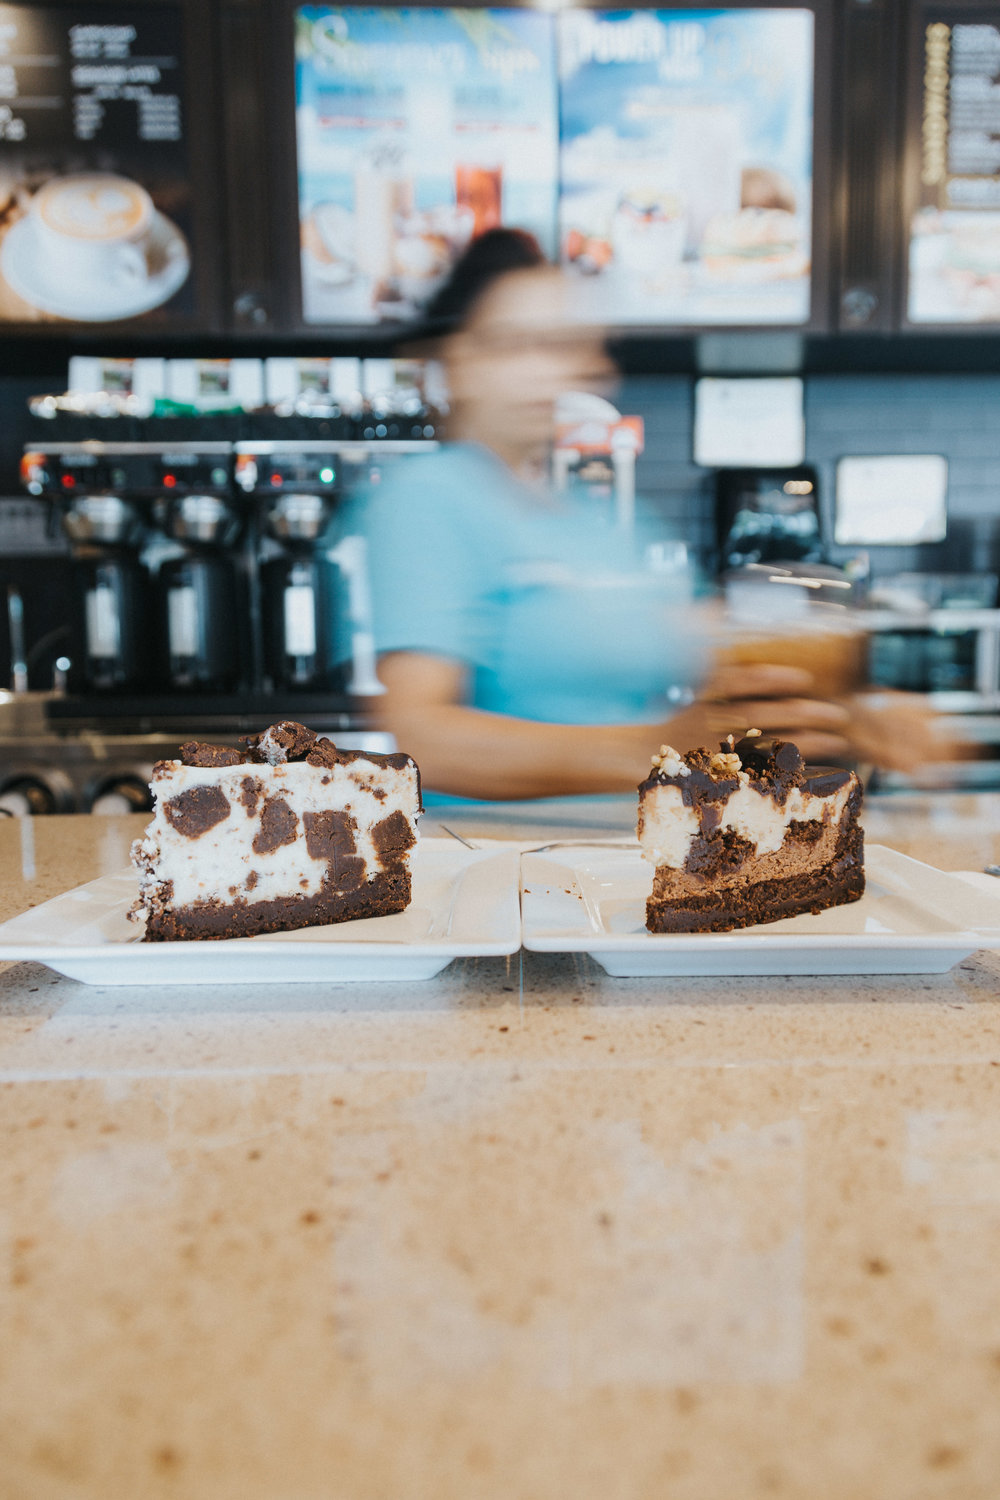 White Chocolate Cake and Peanut Butter Cheesecake available at Cambridge's Coffee Culture